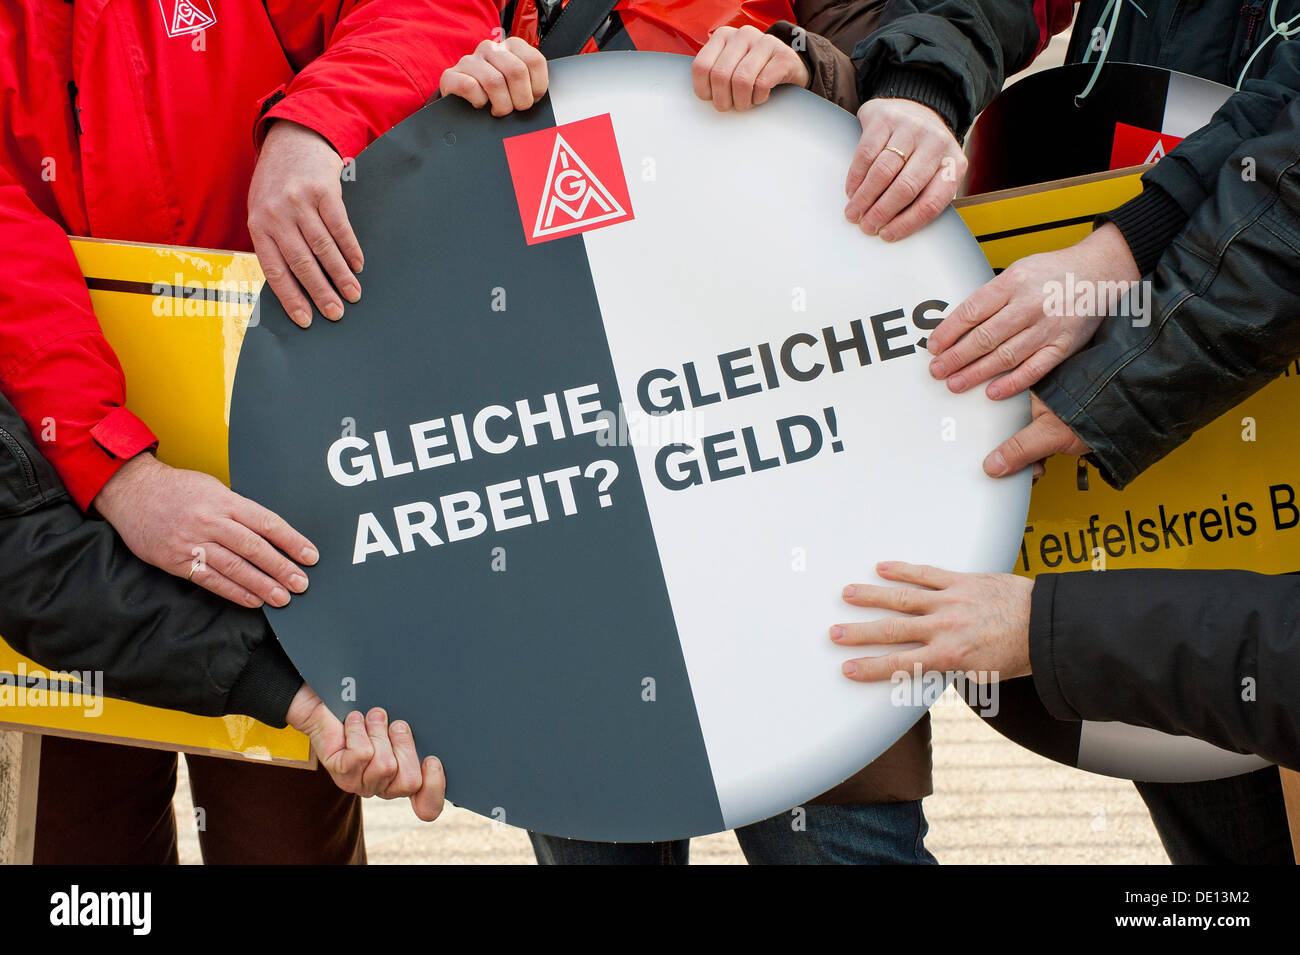 Hands holding sign: 'Gleiche Arbeit? Gleiches Geld!', German for 'Same work? Equal pay!', action day against temporary - Stock Image